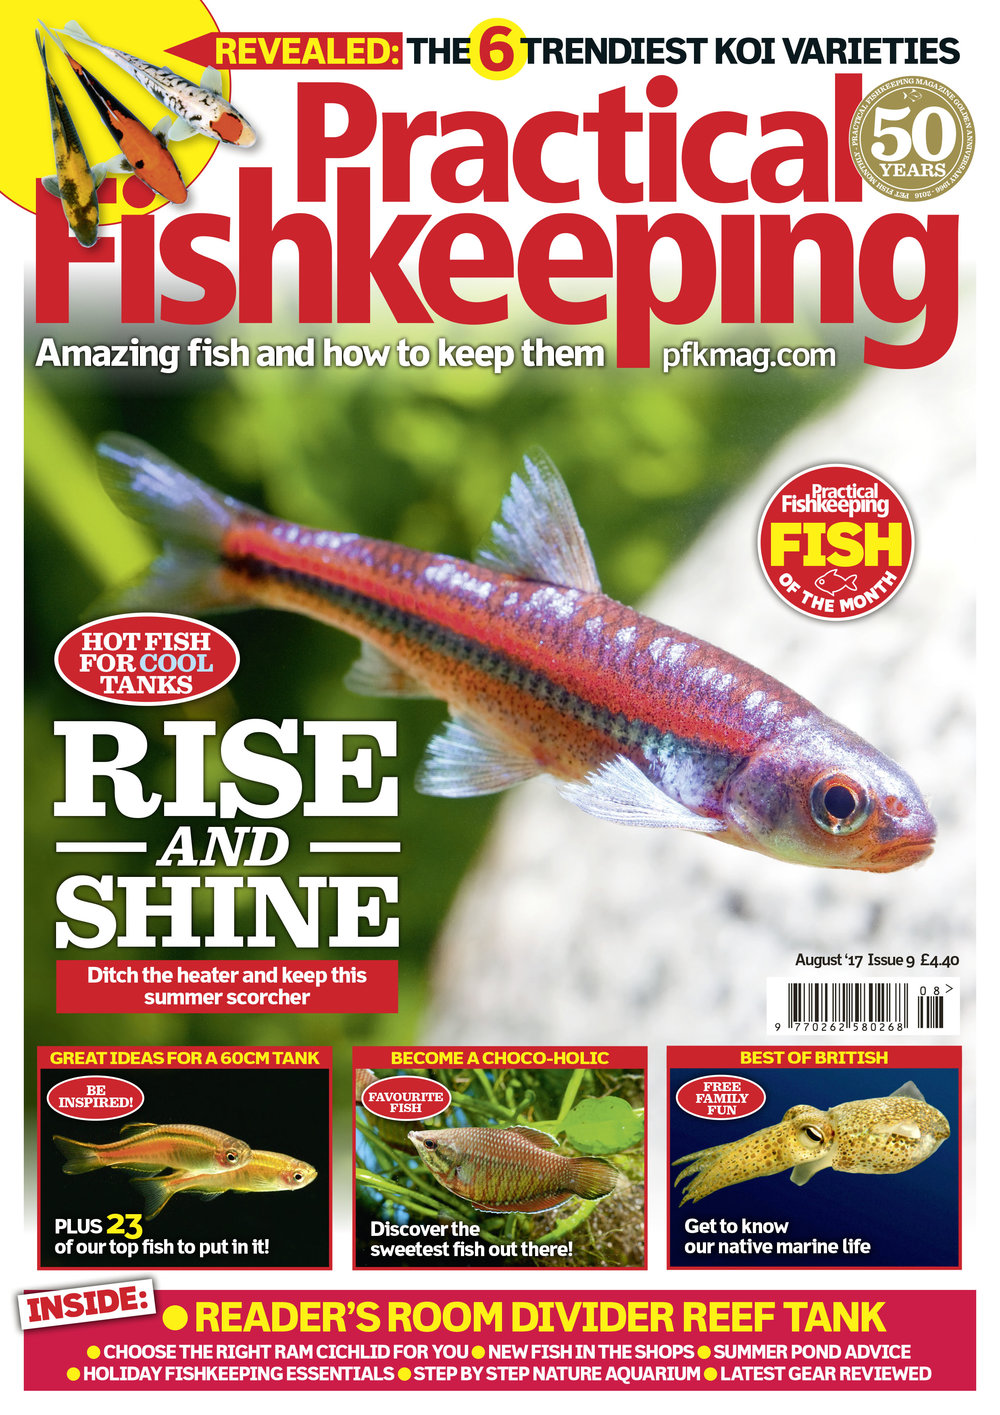 Welcome to the August 2017 issue of Practical Fishkeeping magazine